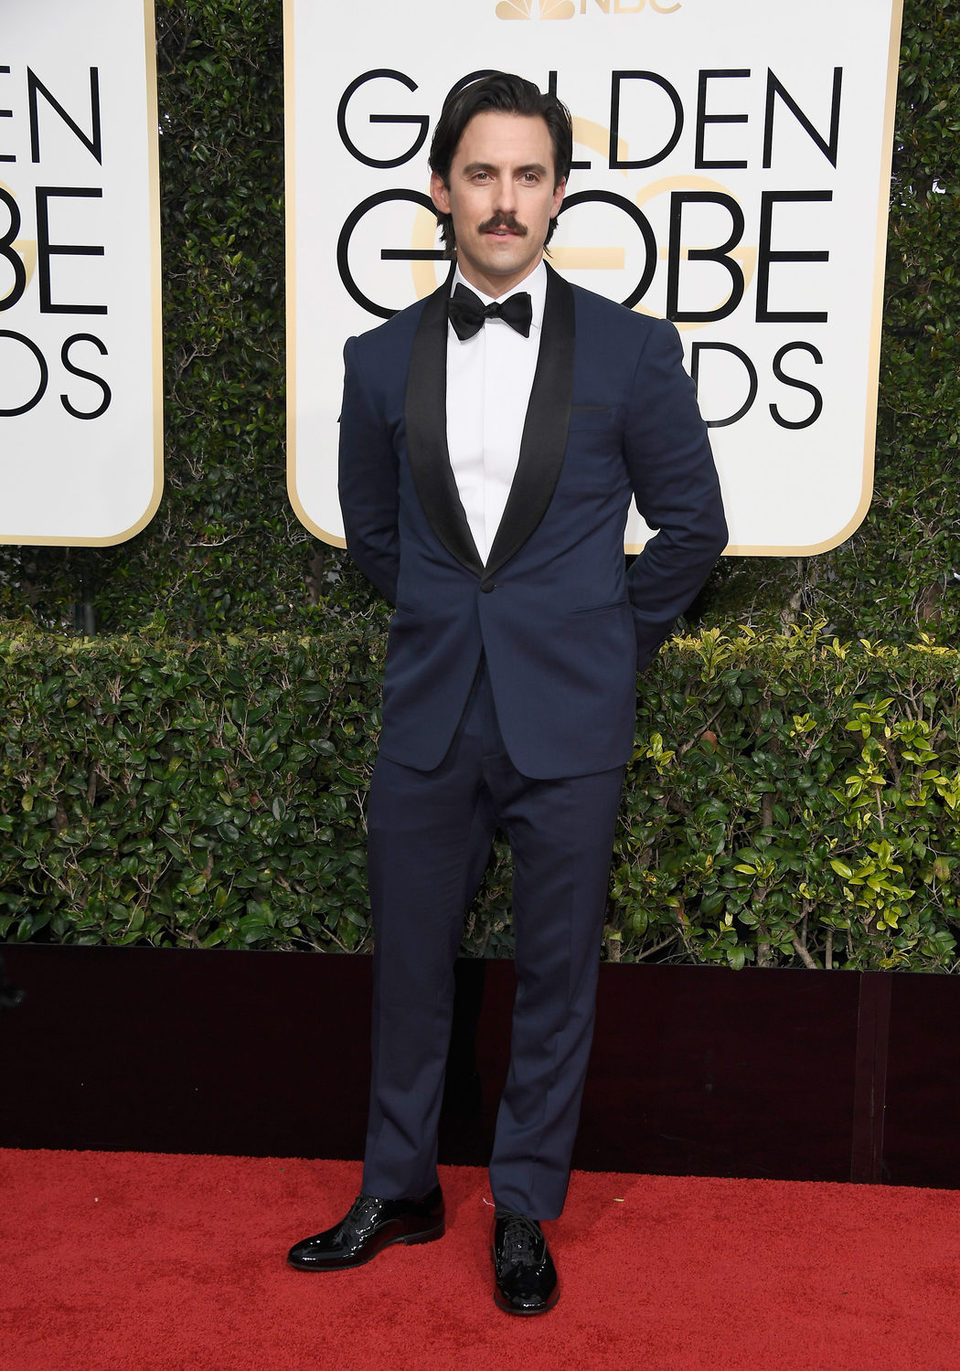 Milo Ventimiglia at the 2017 Golden Globes red carpet